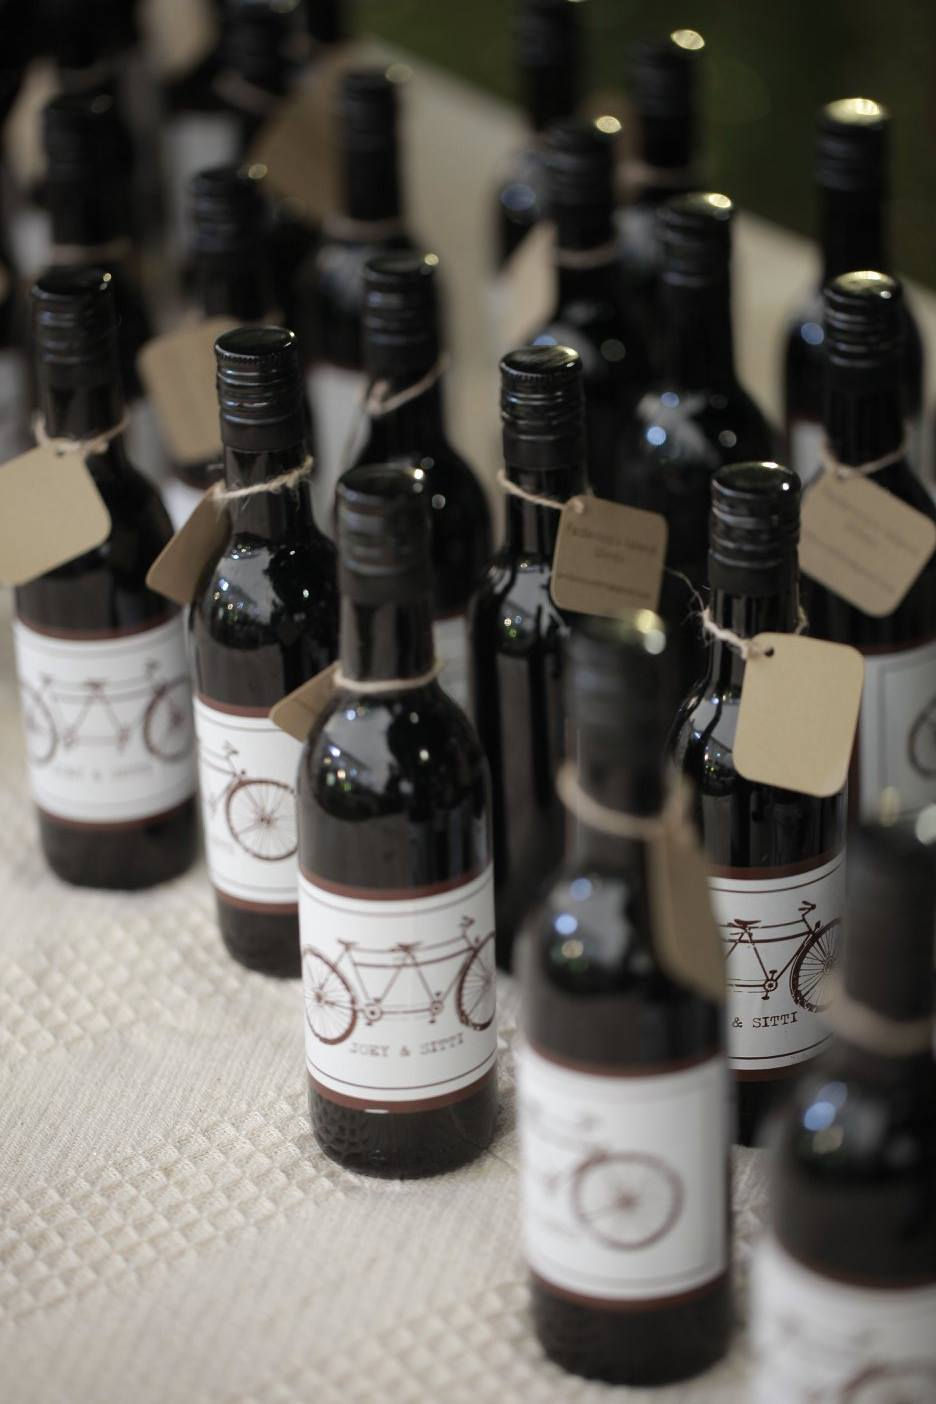 Our yummy Federico's Island Wines from probinsiyahits@gmail.com.